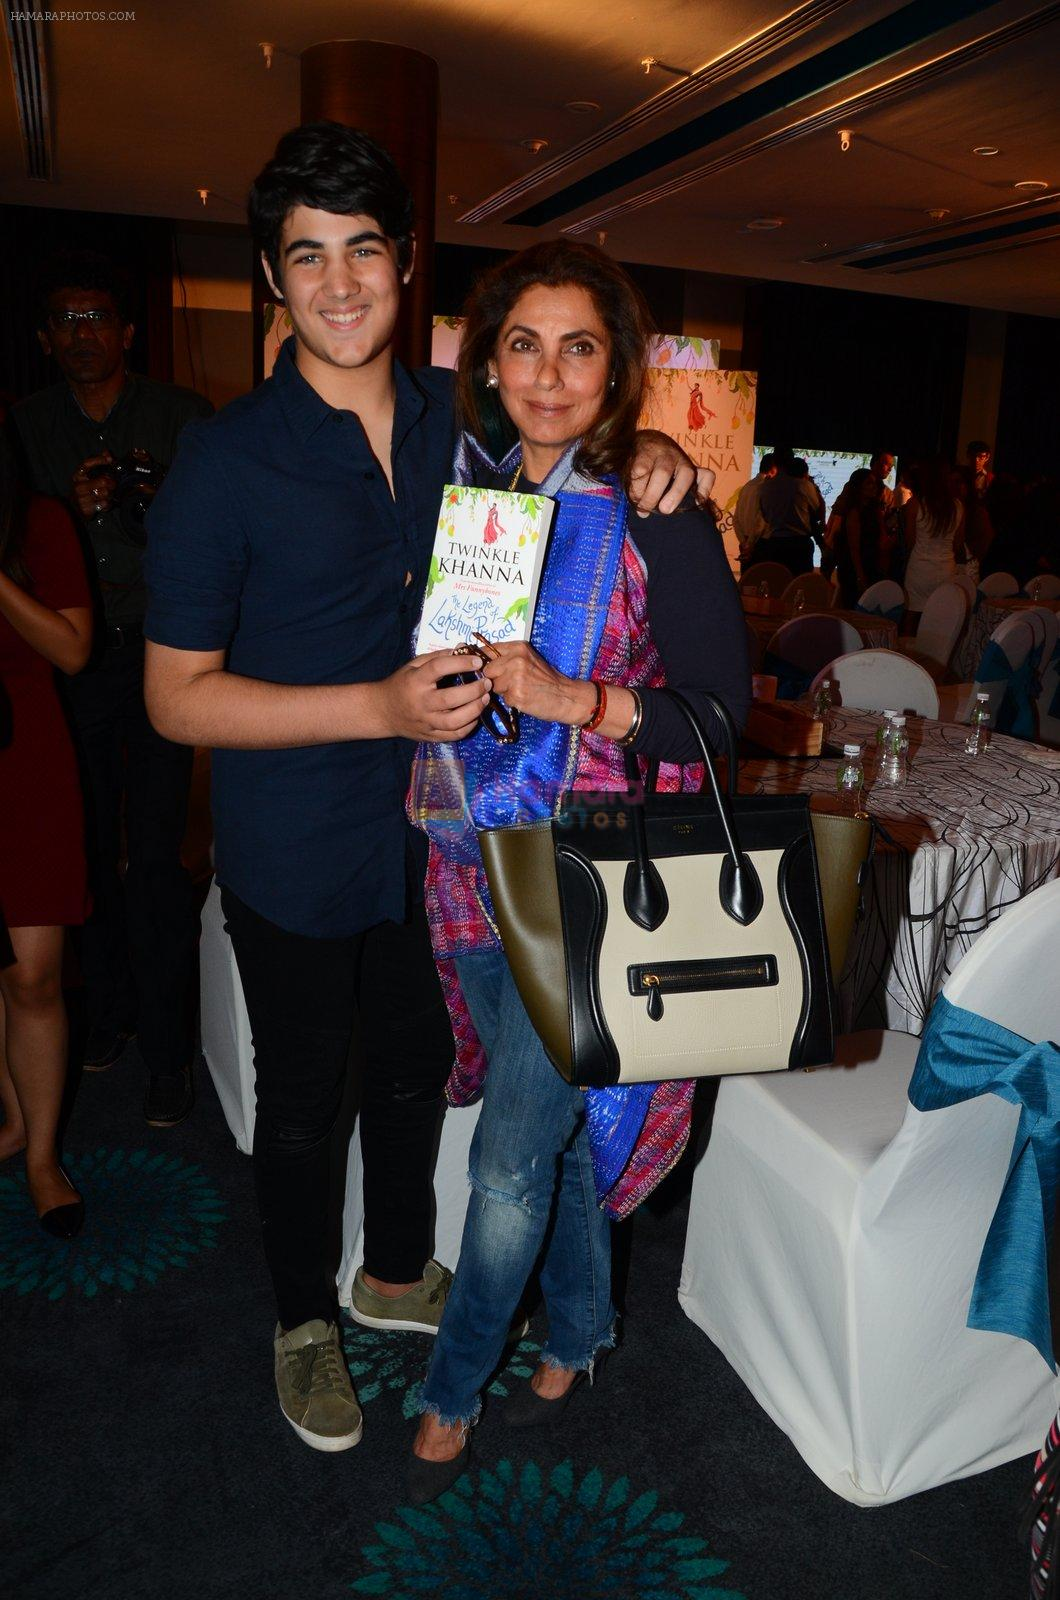 Dimple Kapadia at Twinkle Khanna's book launch in J W Marriott, Mumbai on 15th Nov 2016